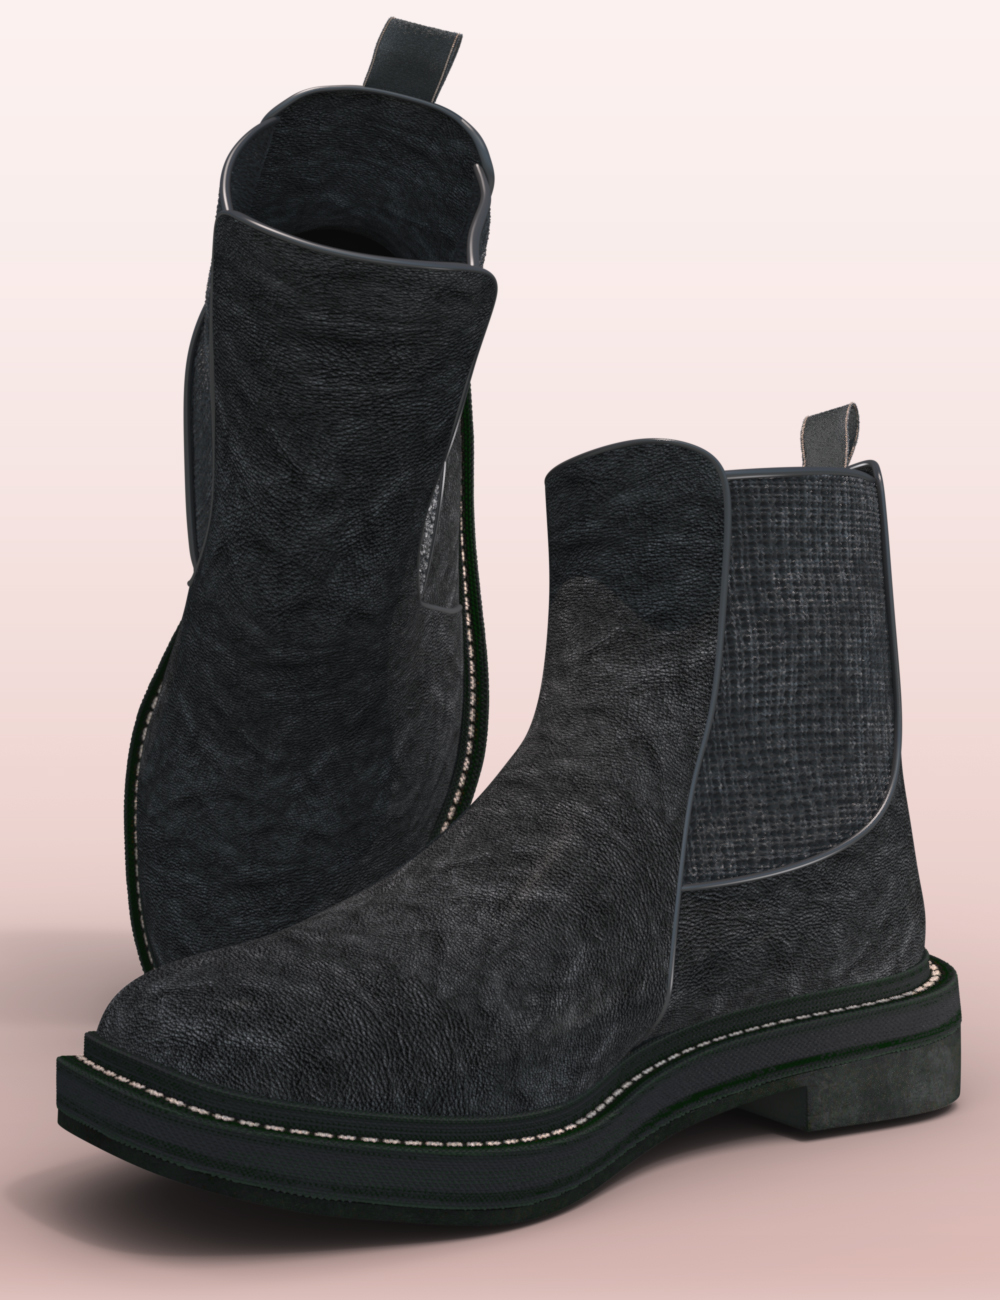 Fashion Basics: Chelsea Boots for Genesis 8.1 by: 3DStyle, 3D Models by Daz 3D